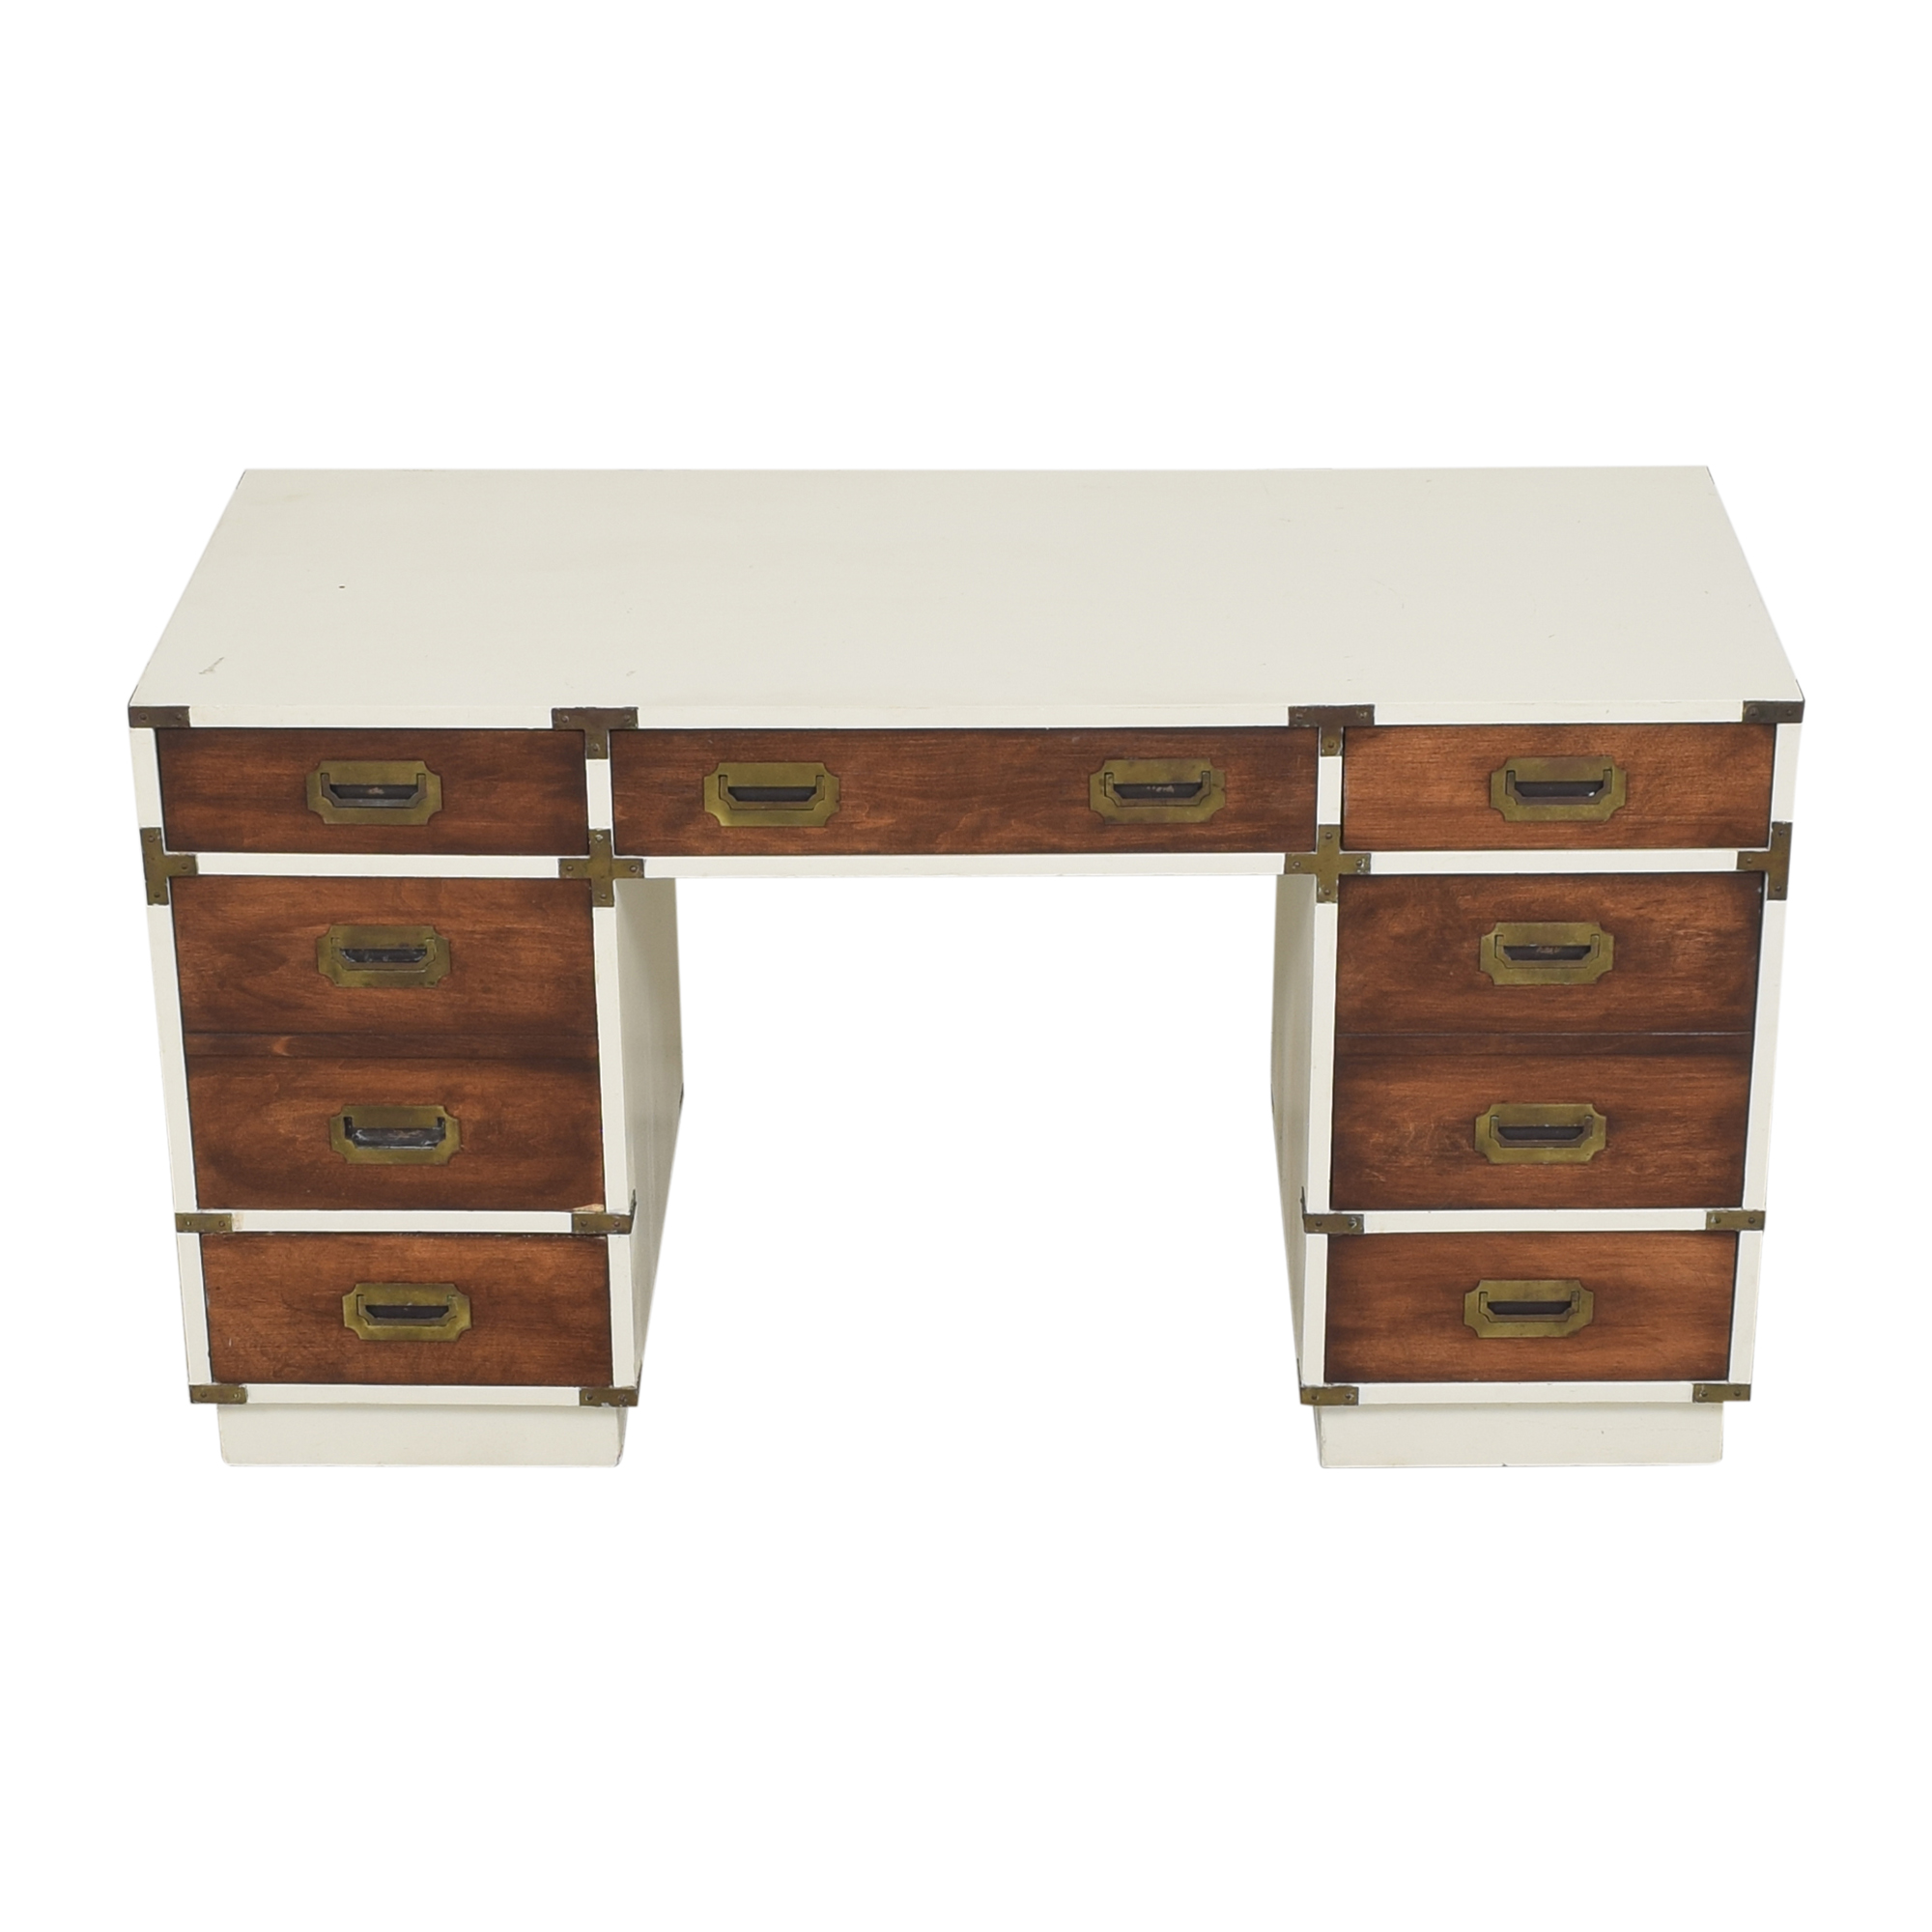 Campaign-Style Executive Desk off white & brown